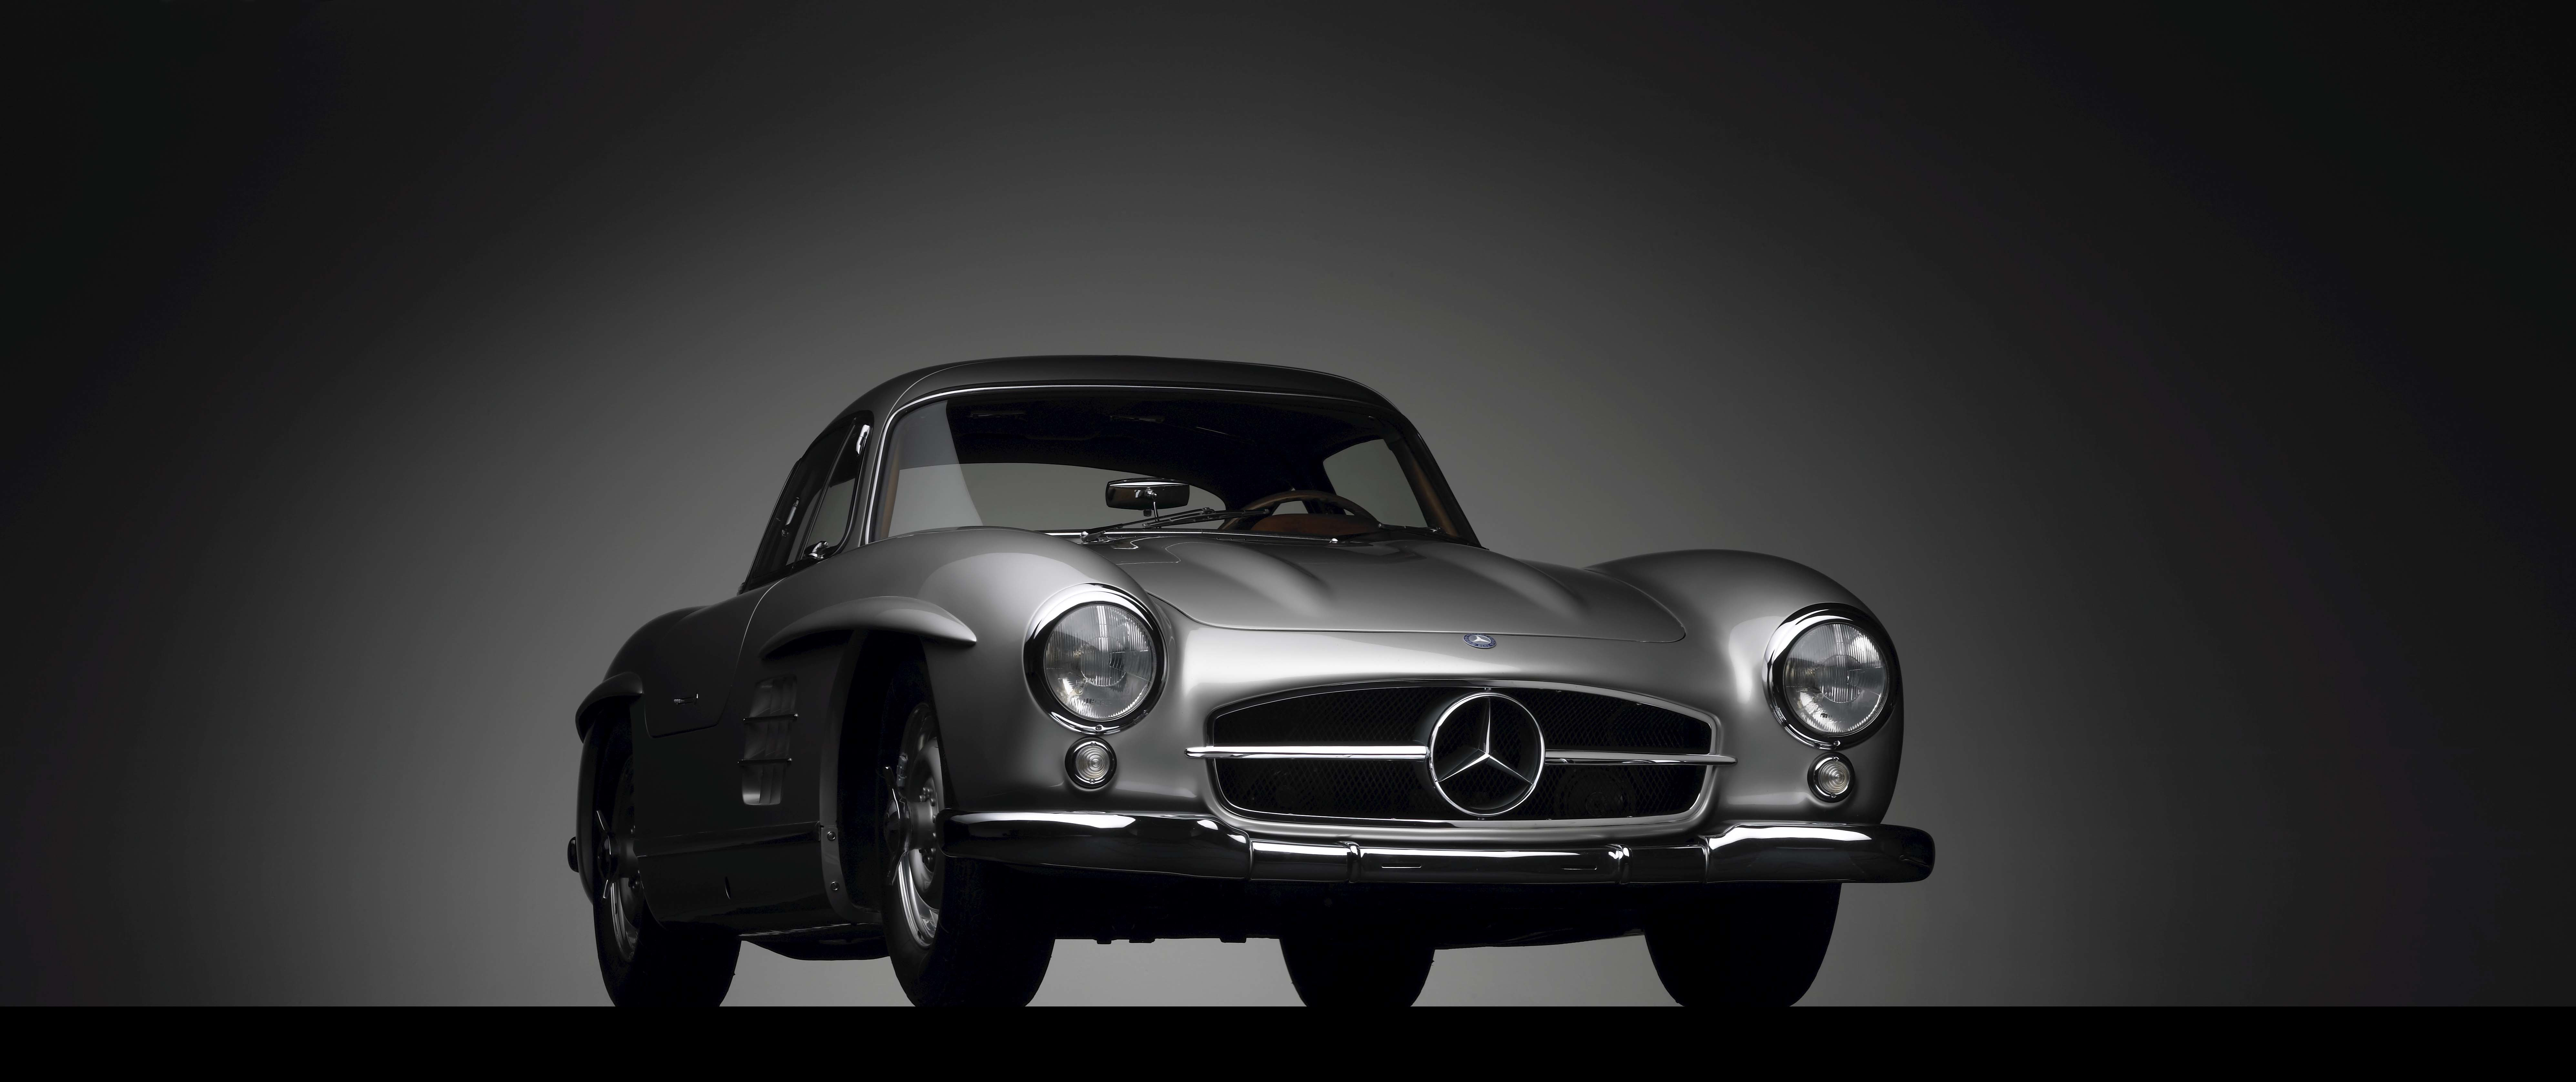 cars Mercedes-Benz 300SL HD Wallpaper